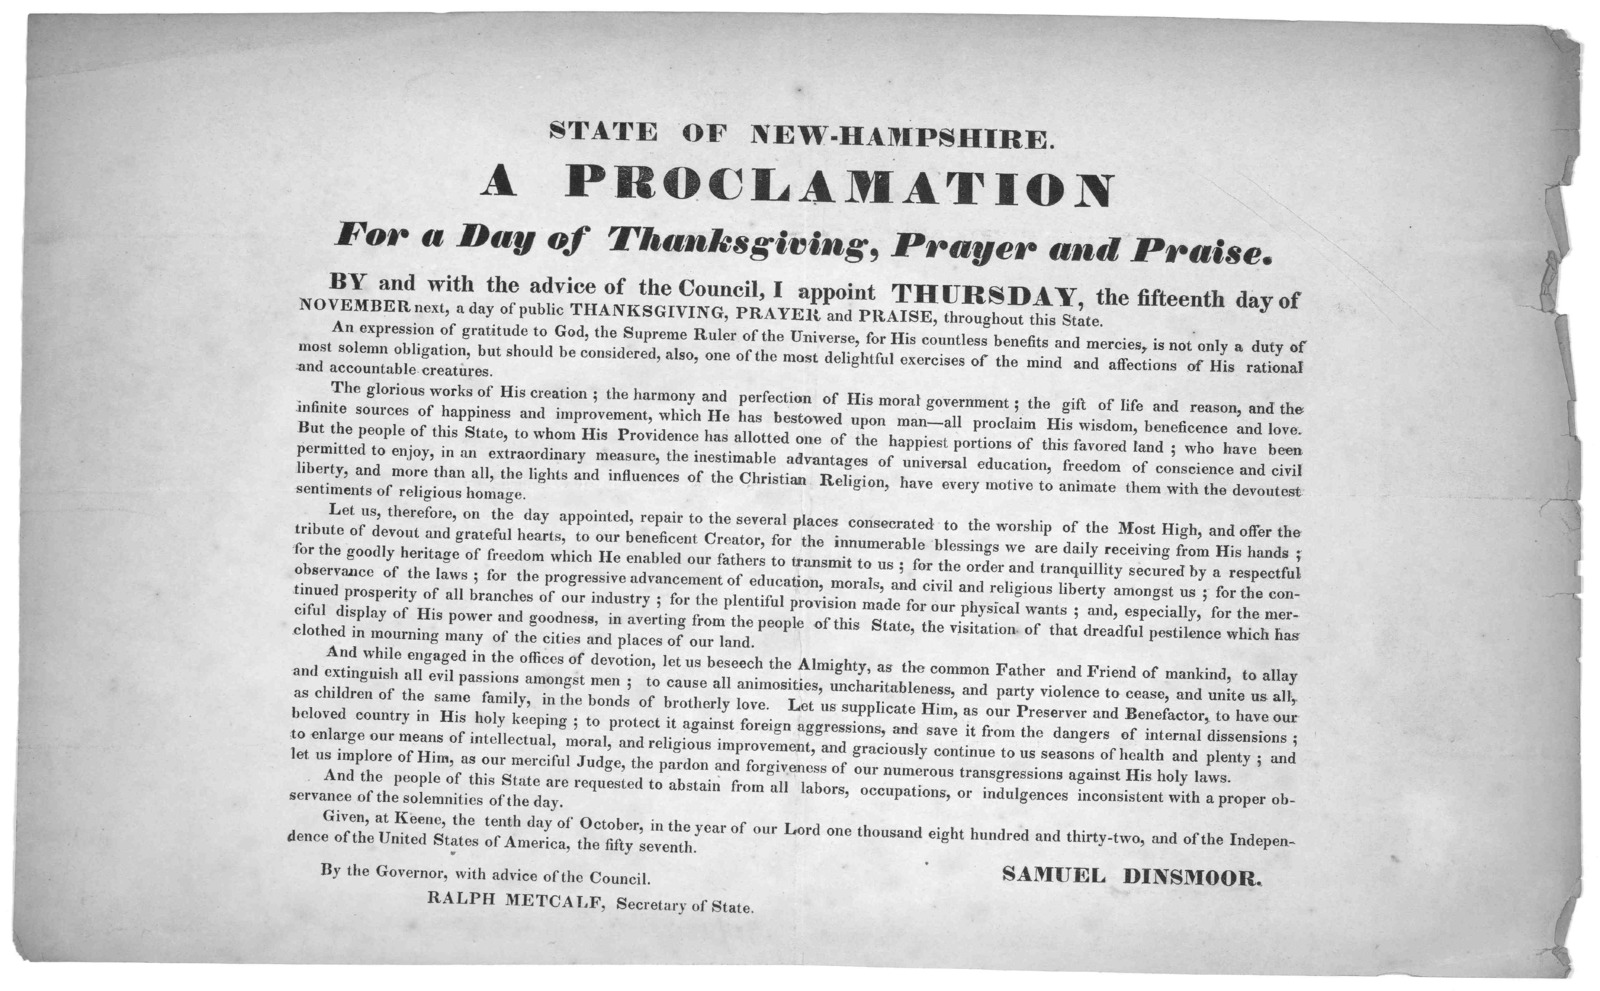 State of New Hampshire. A proclamation for a day of Thanksgiving, prayer and praise ... I appoint Thursday, the fifteenth day of November next, a day of public thanksgiving, prayer and praise, throughout this State ... Given at Keene, the tenth